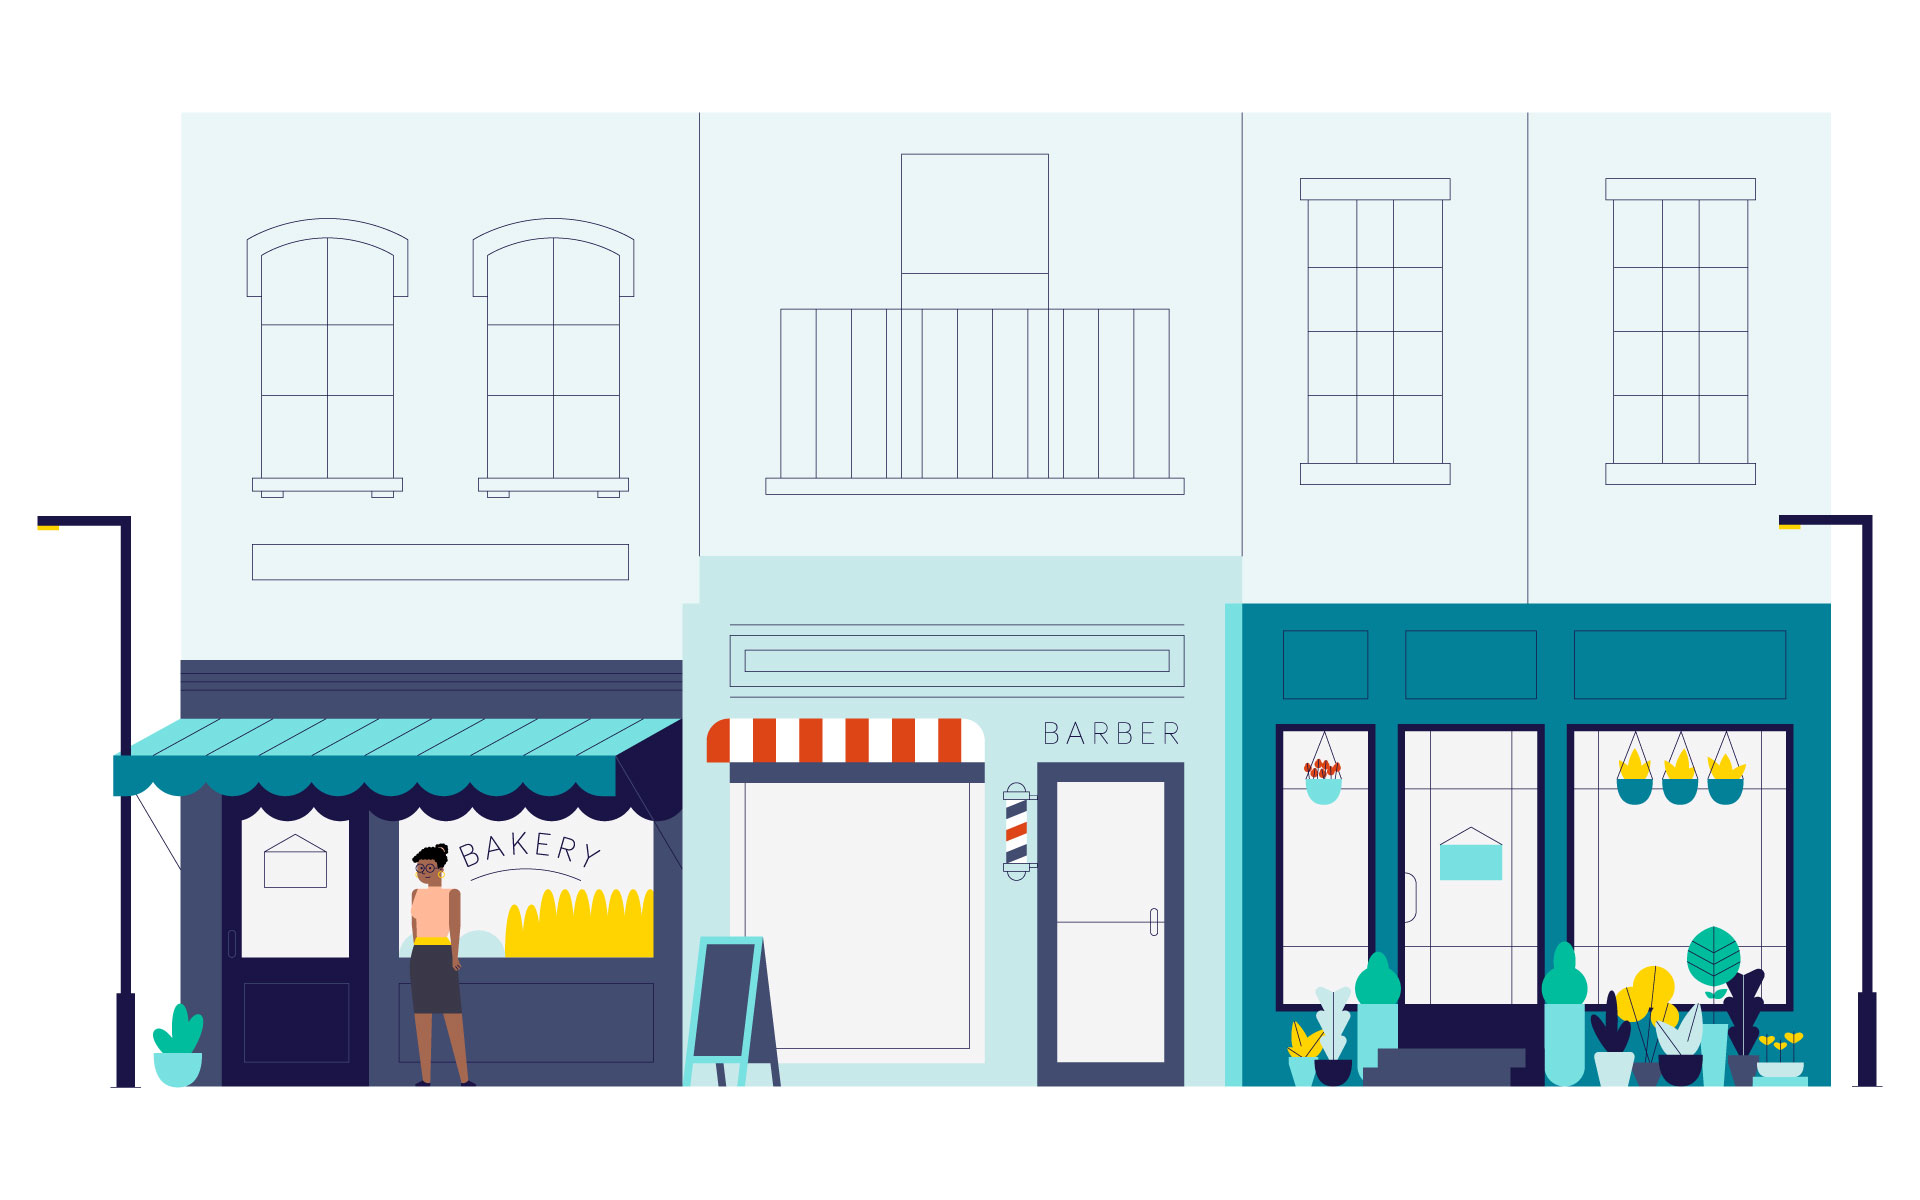 Illustration of a street with various stores: a bakery, a barber shop and a florist shop